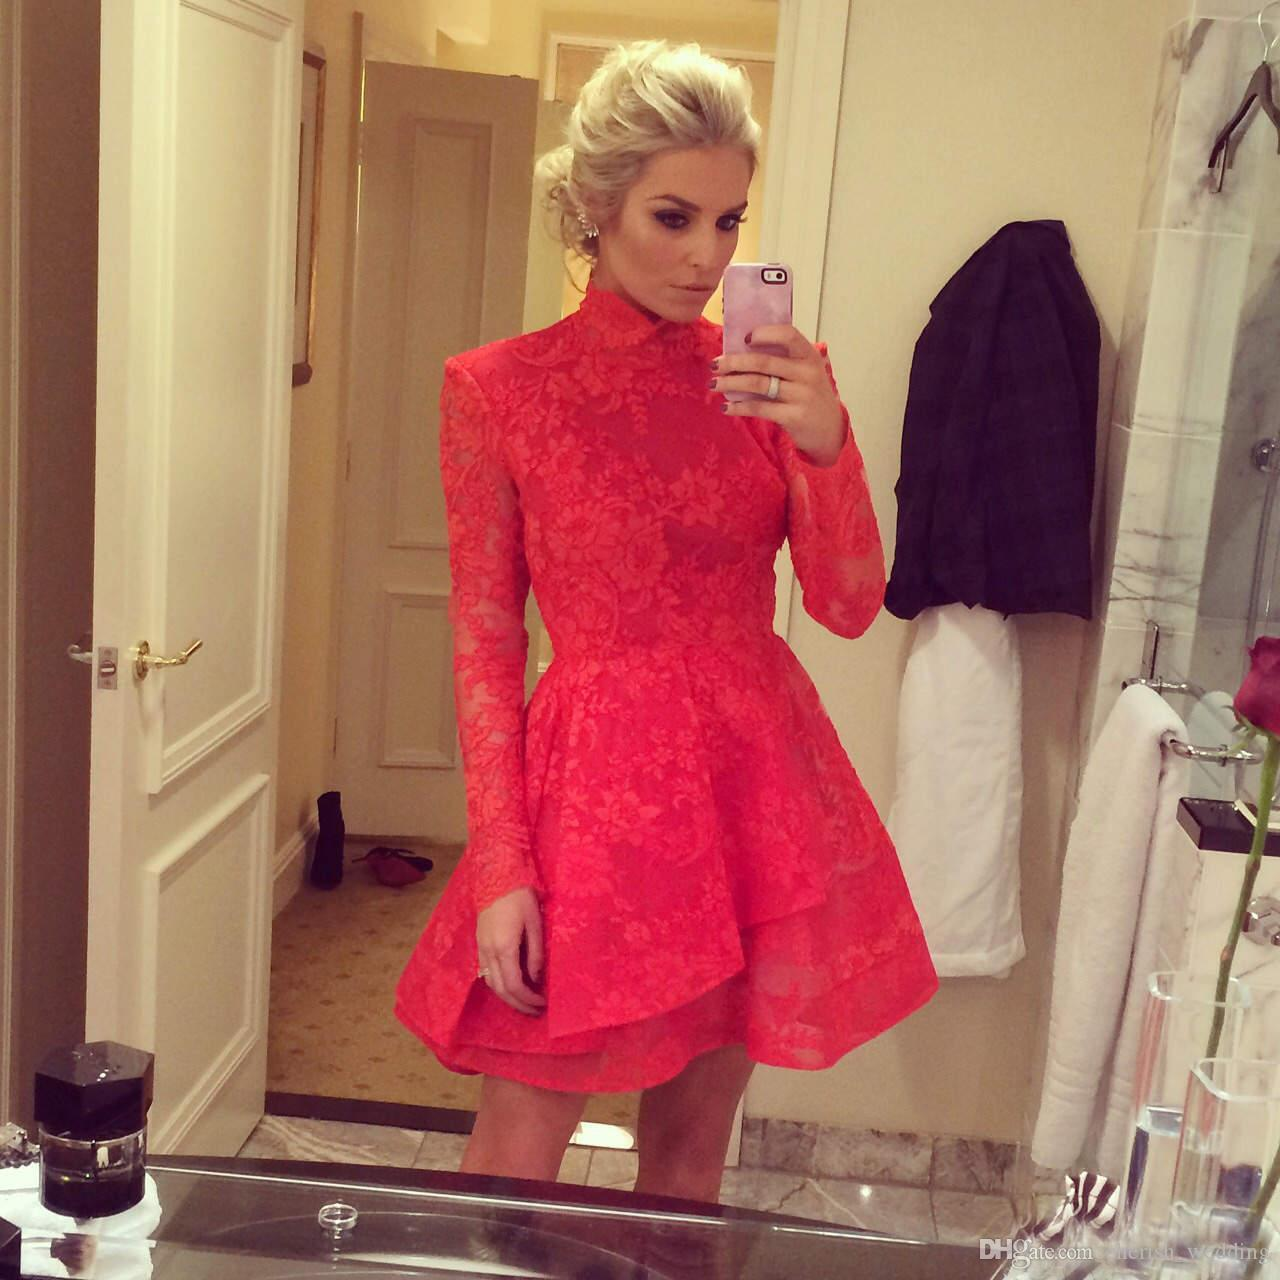 Red Lace Short Prom Dresses 2017 A-Line High Neck Applique Mini Long Sleeves Party Cocktail Dresses Evening Gown Wear Homecoming Dresses